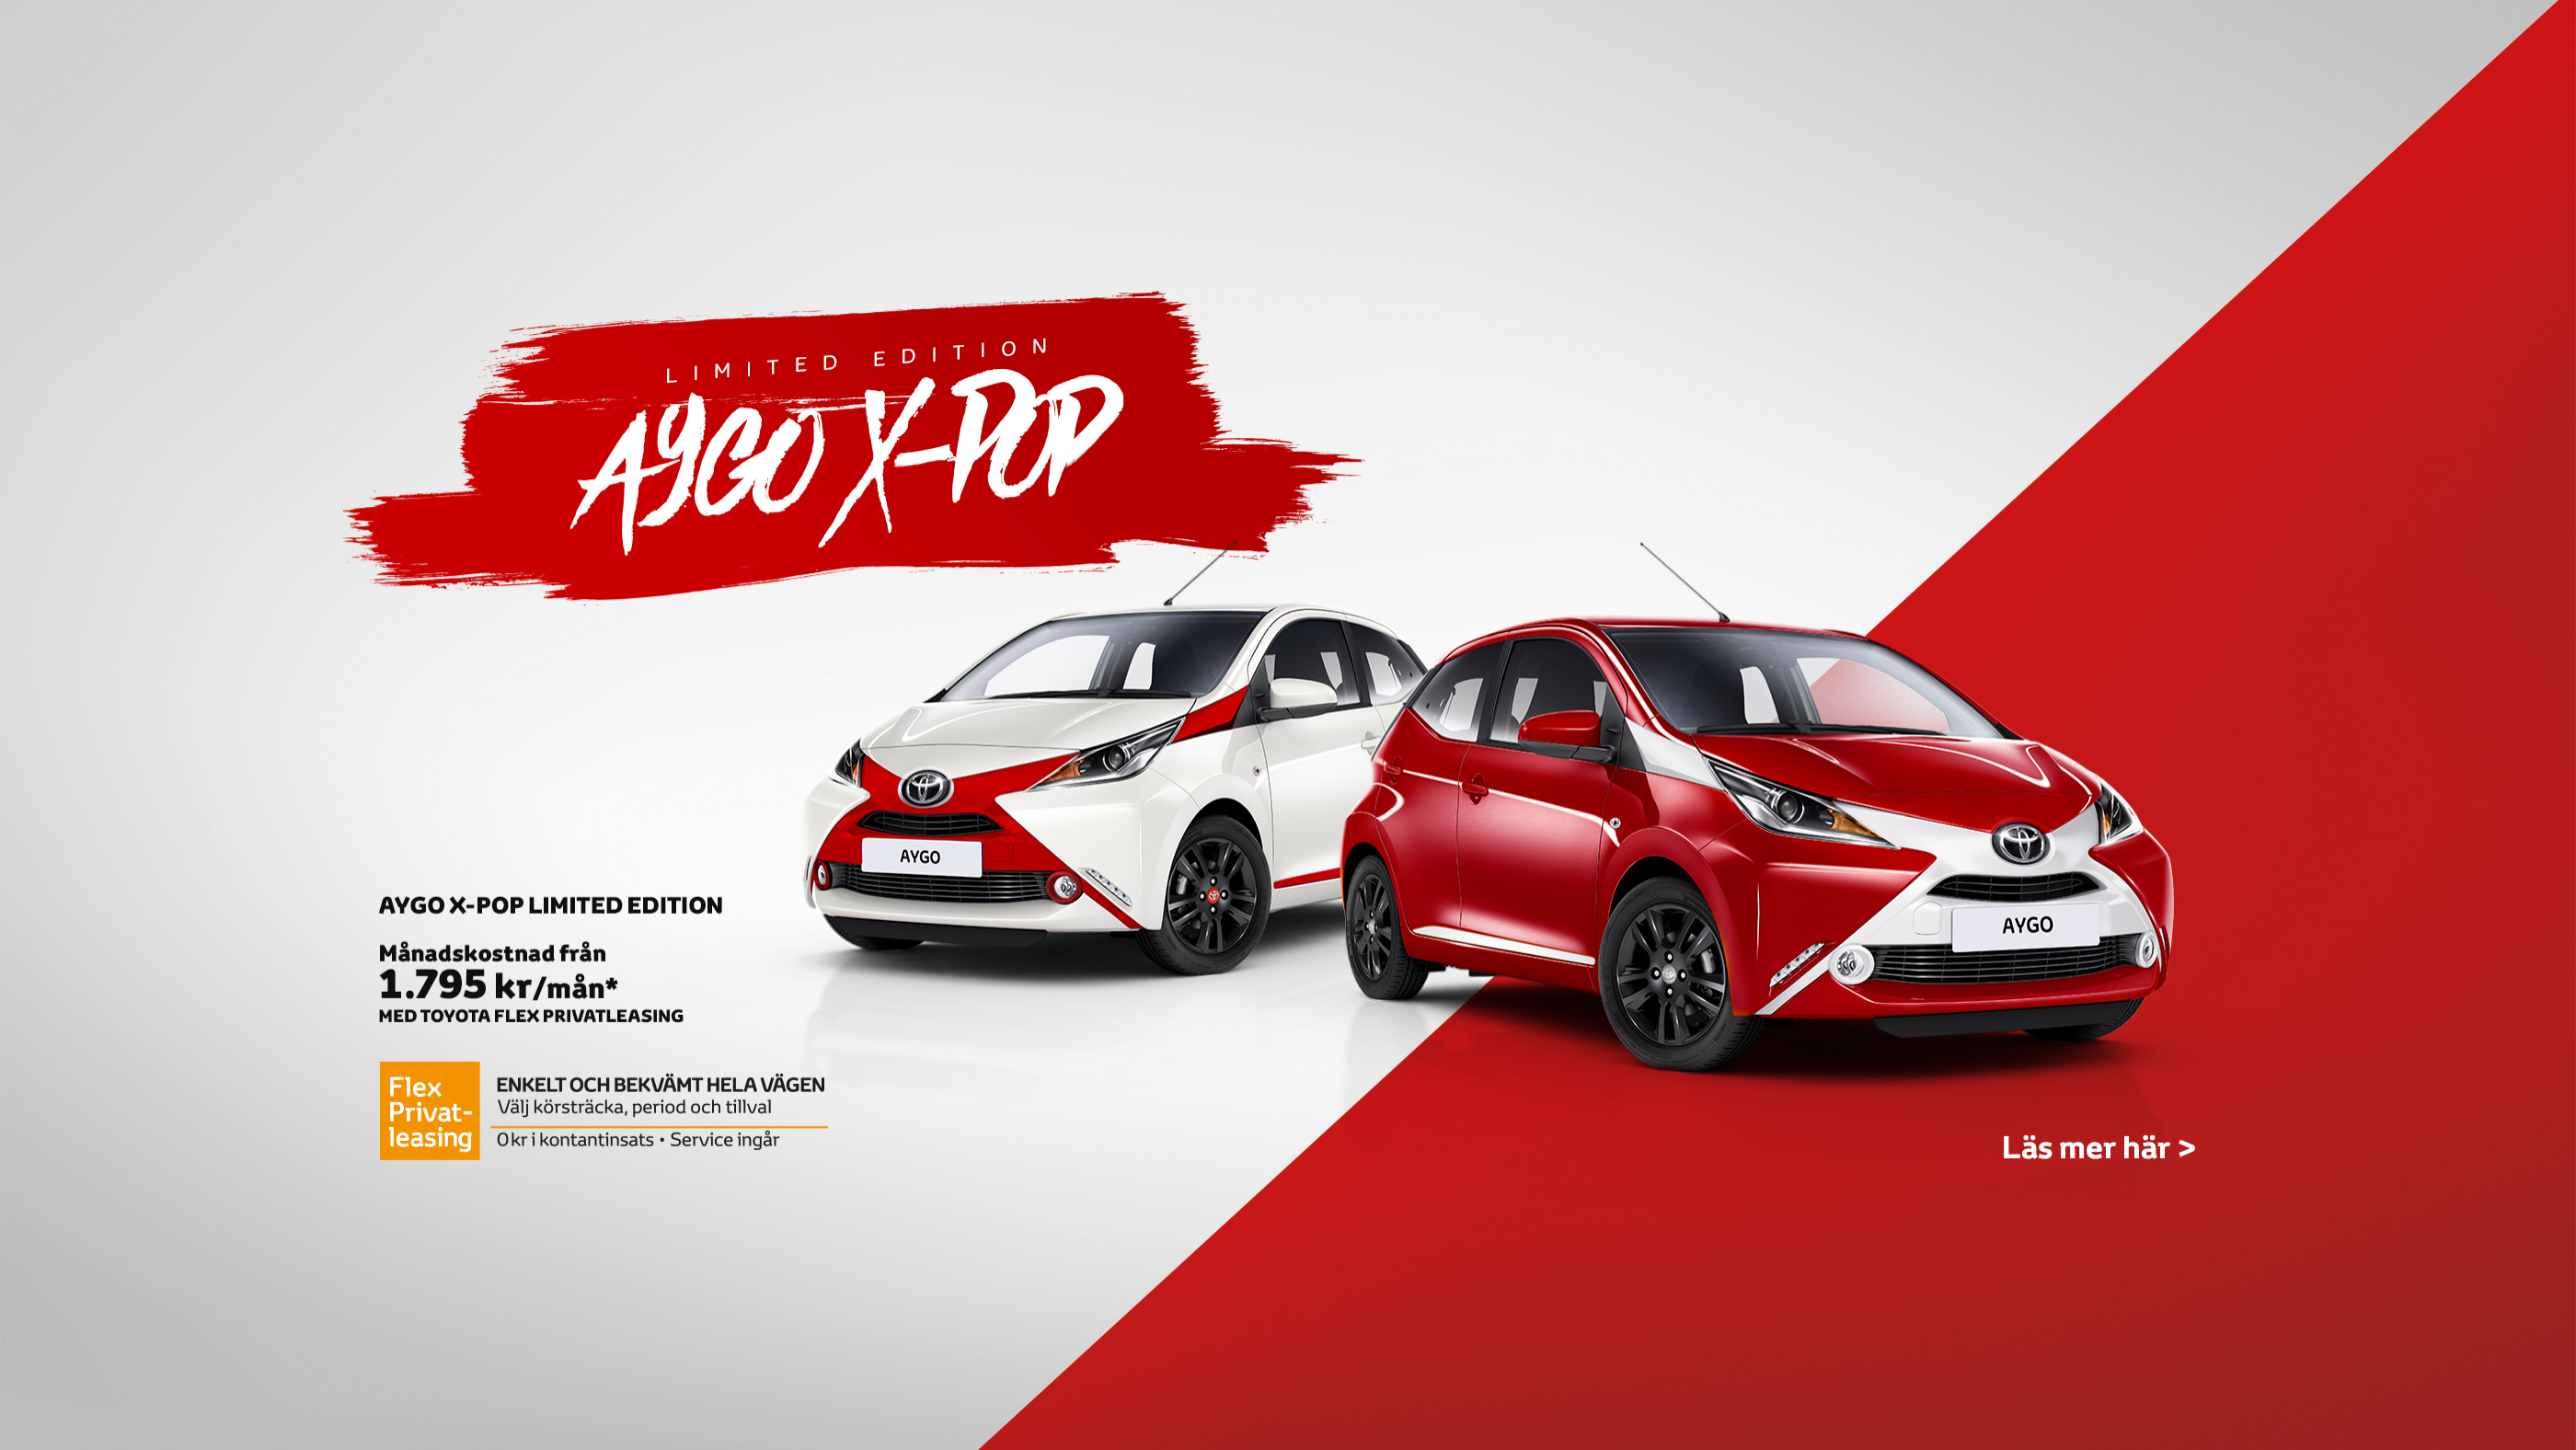 Aygo X-pop, a limited edition design from Toyota as presented on their site.